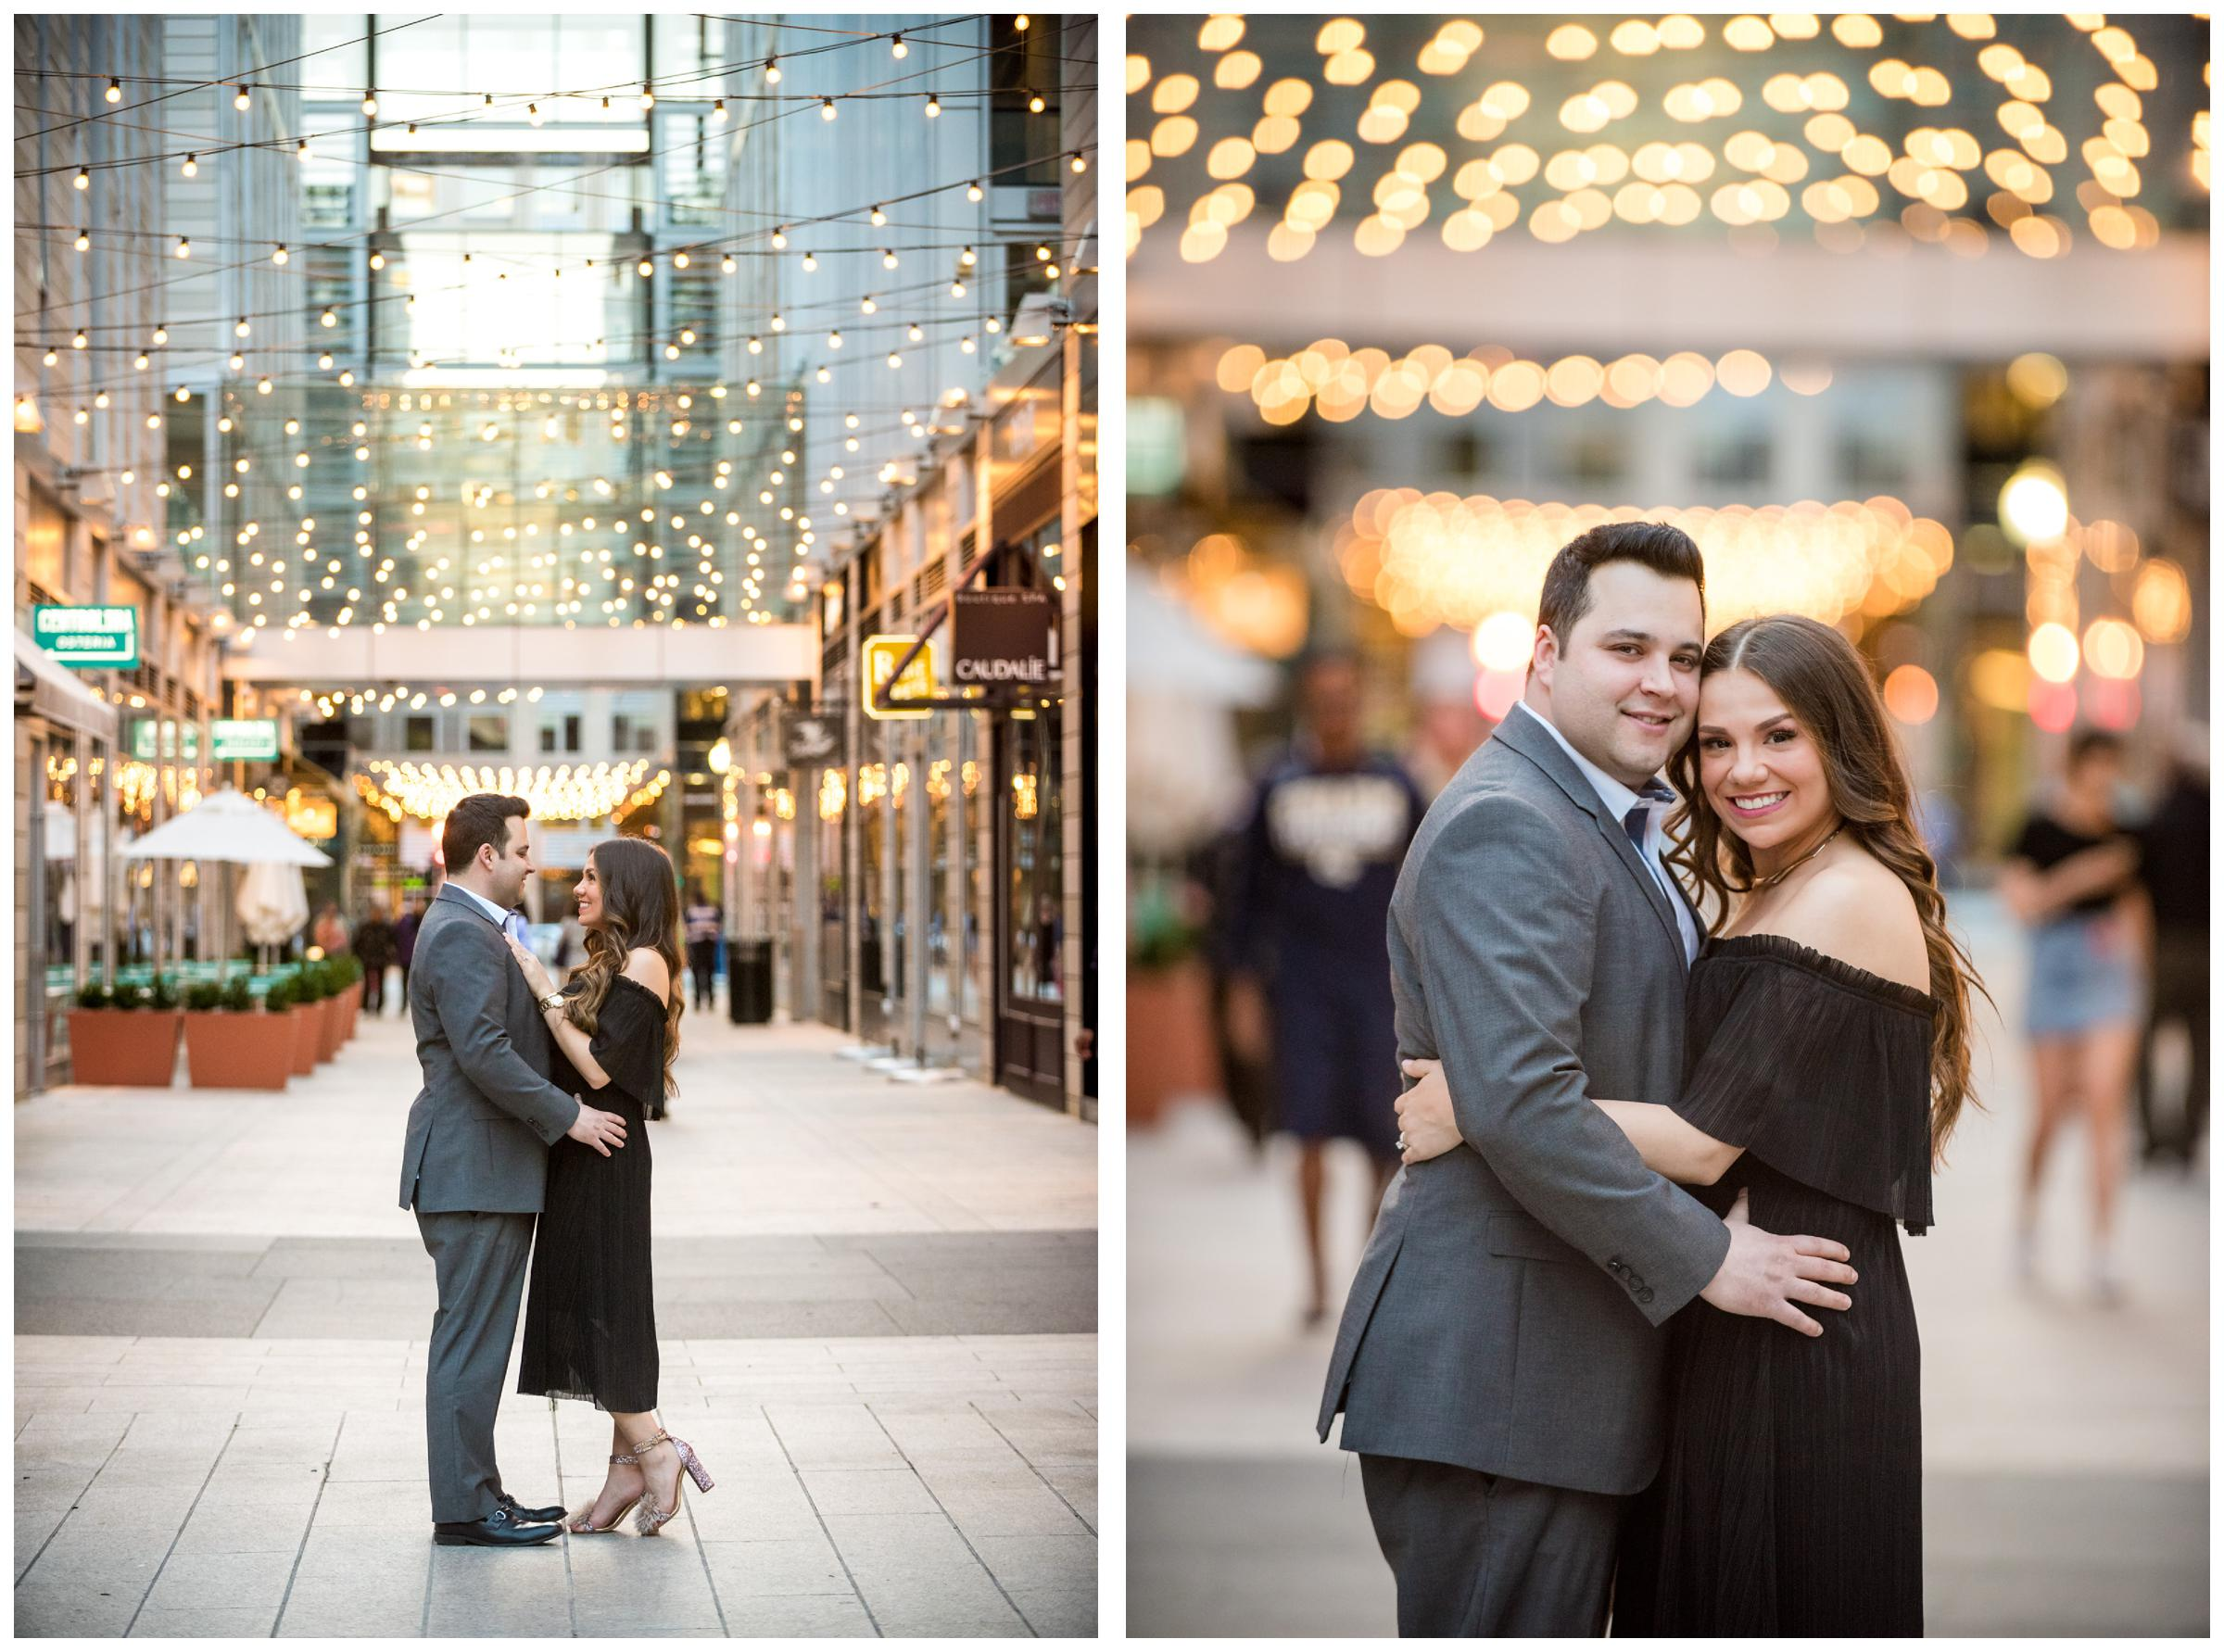 Couple surrounded by string lights during engagement session in City Center, Washington DC